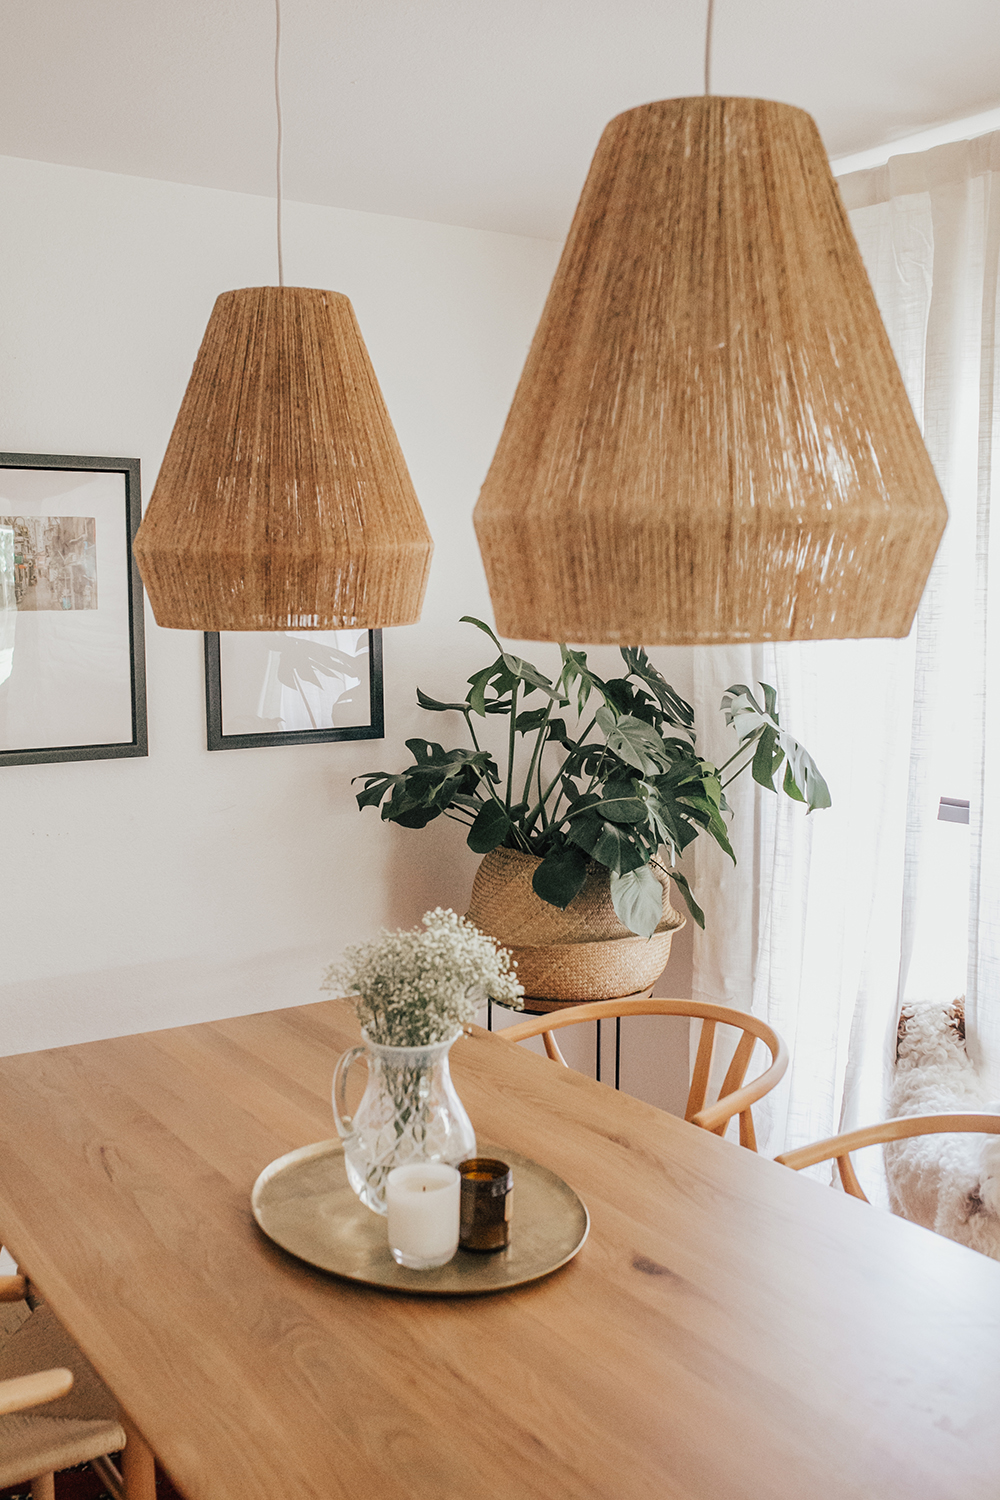 livvyland-blog-olivia-watson-austin-texas-lifestyle-blogger-modern-bohemian-bungalow-dining-room-kitchen-anthropologie-light-fixtures